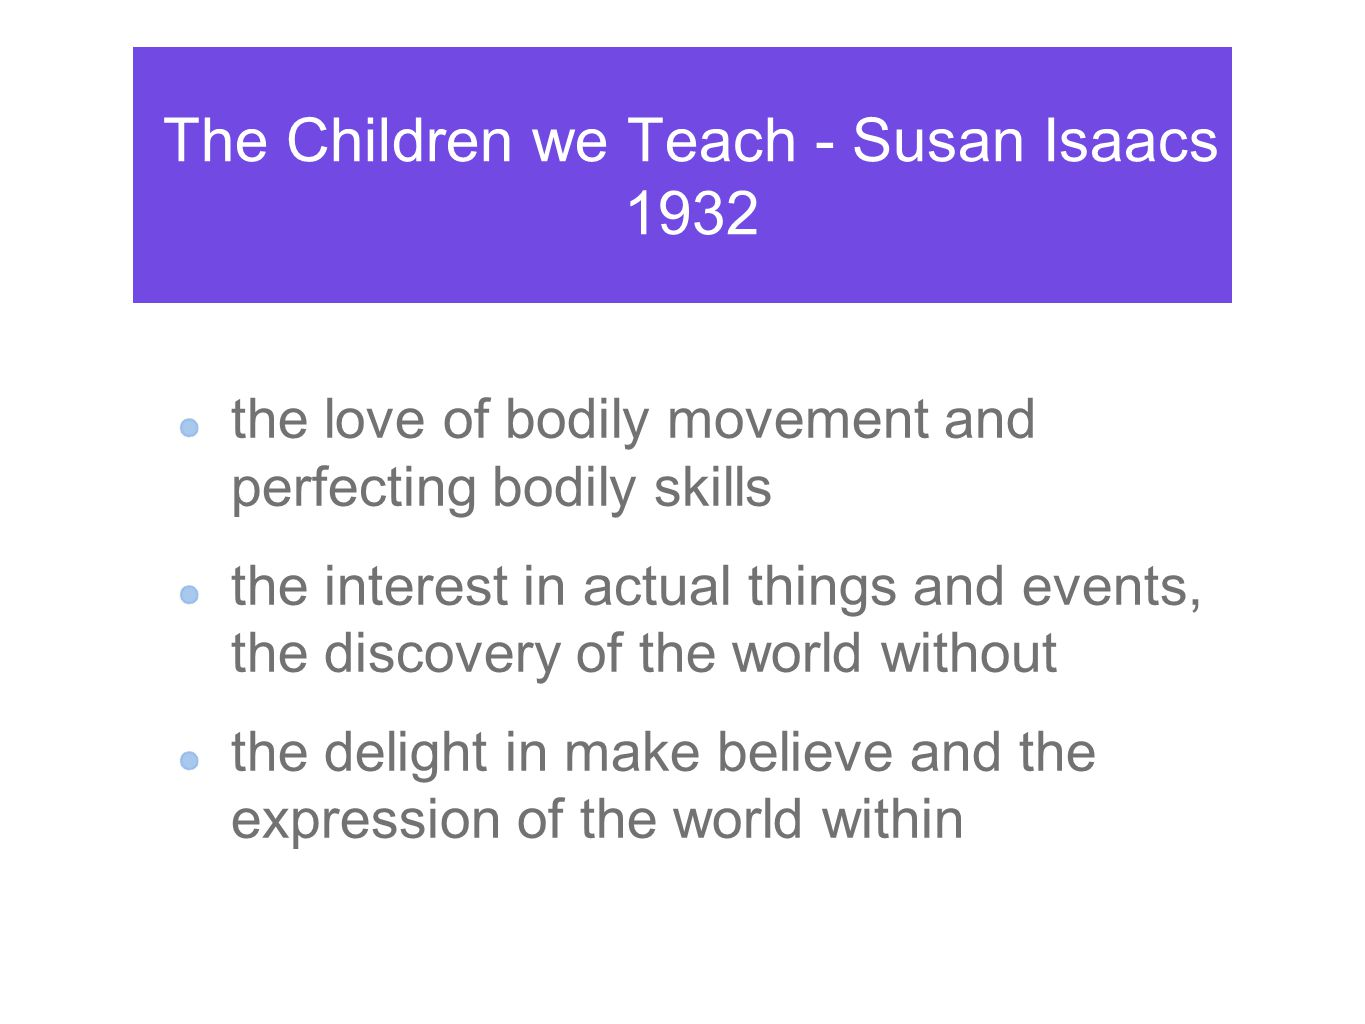 The Children we Teach - Susan Isaacs 1932